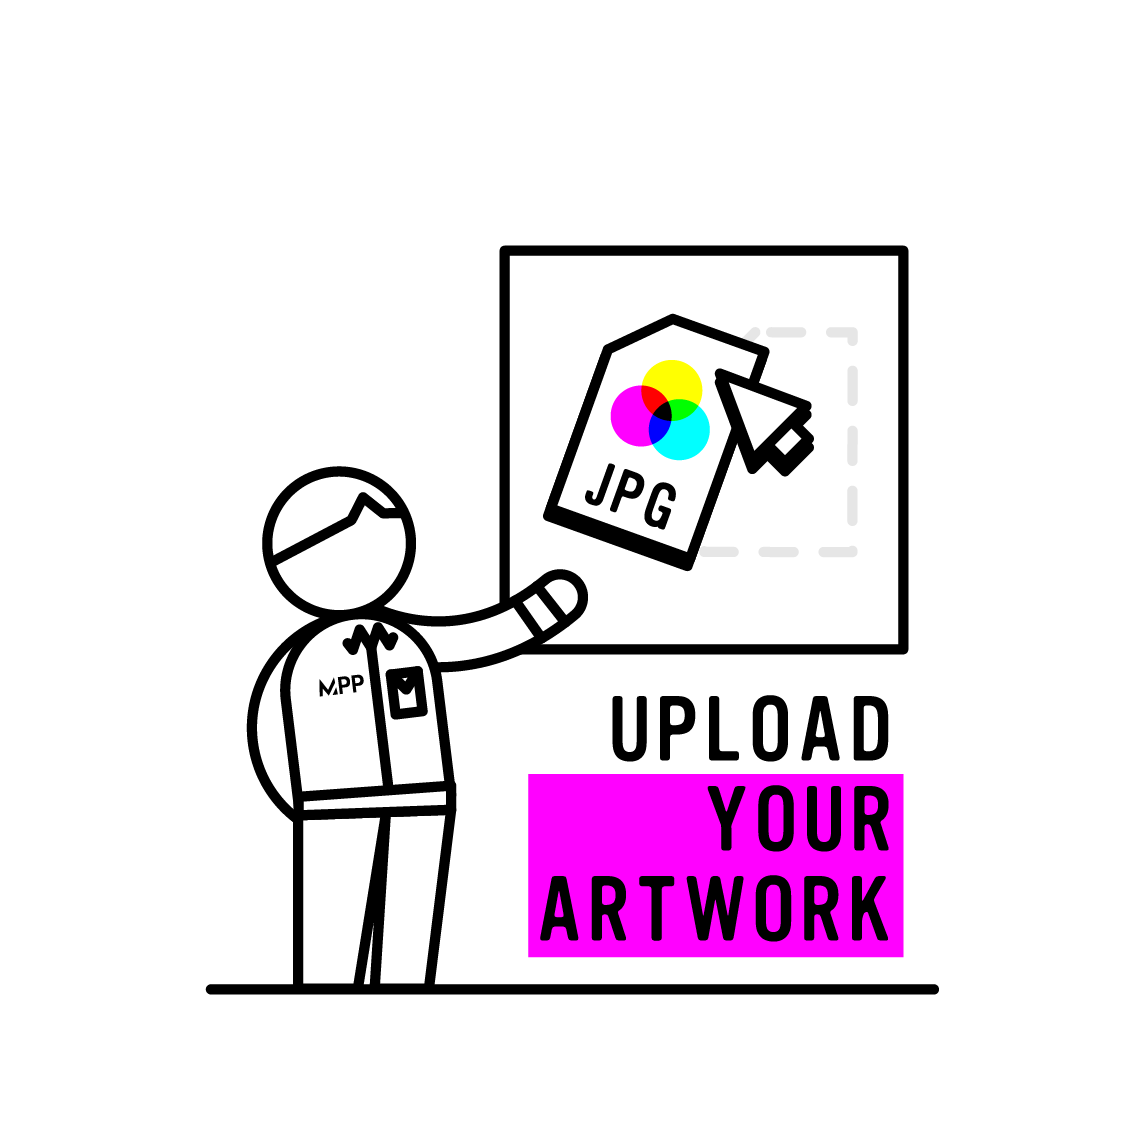 upload your artwork